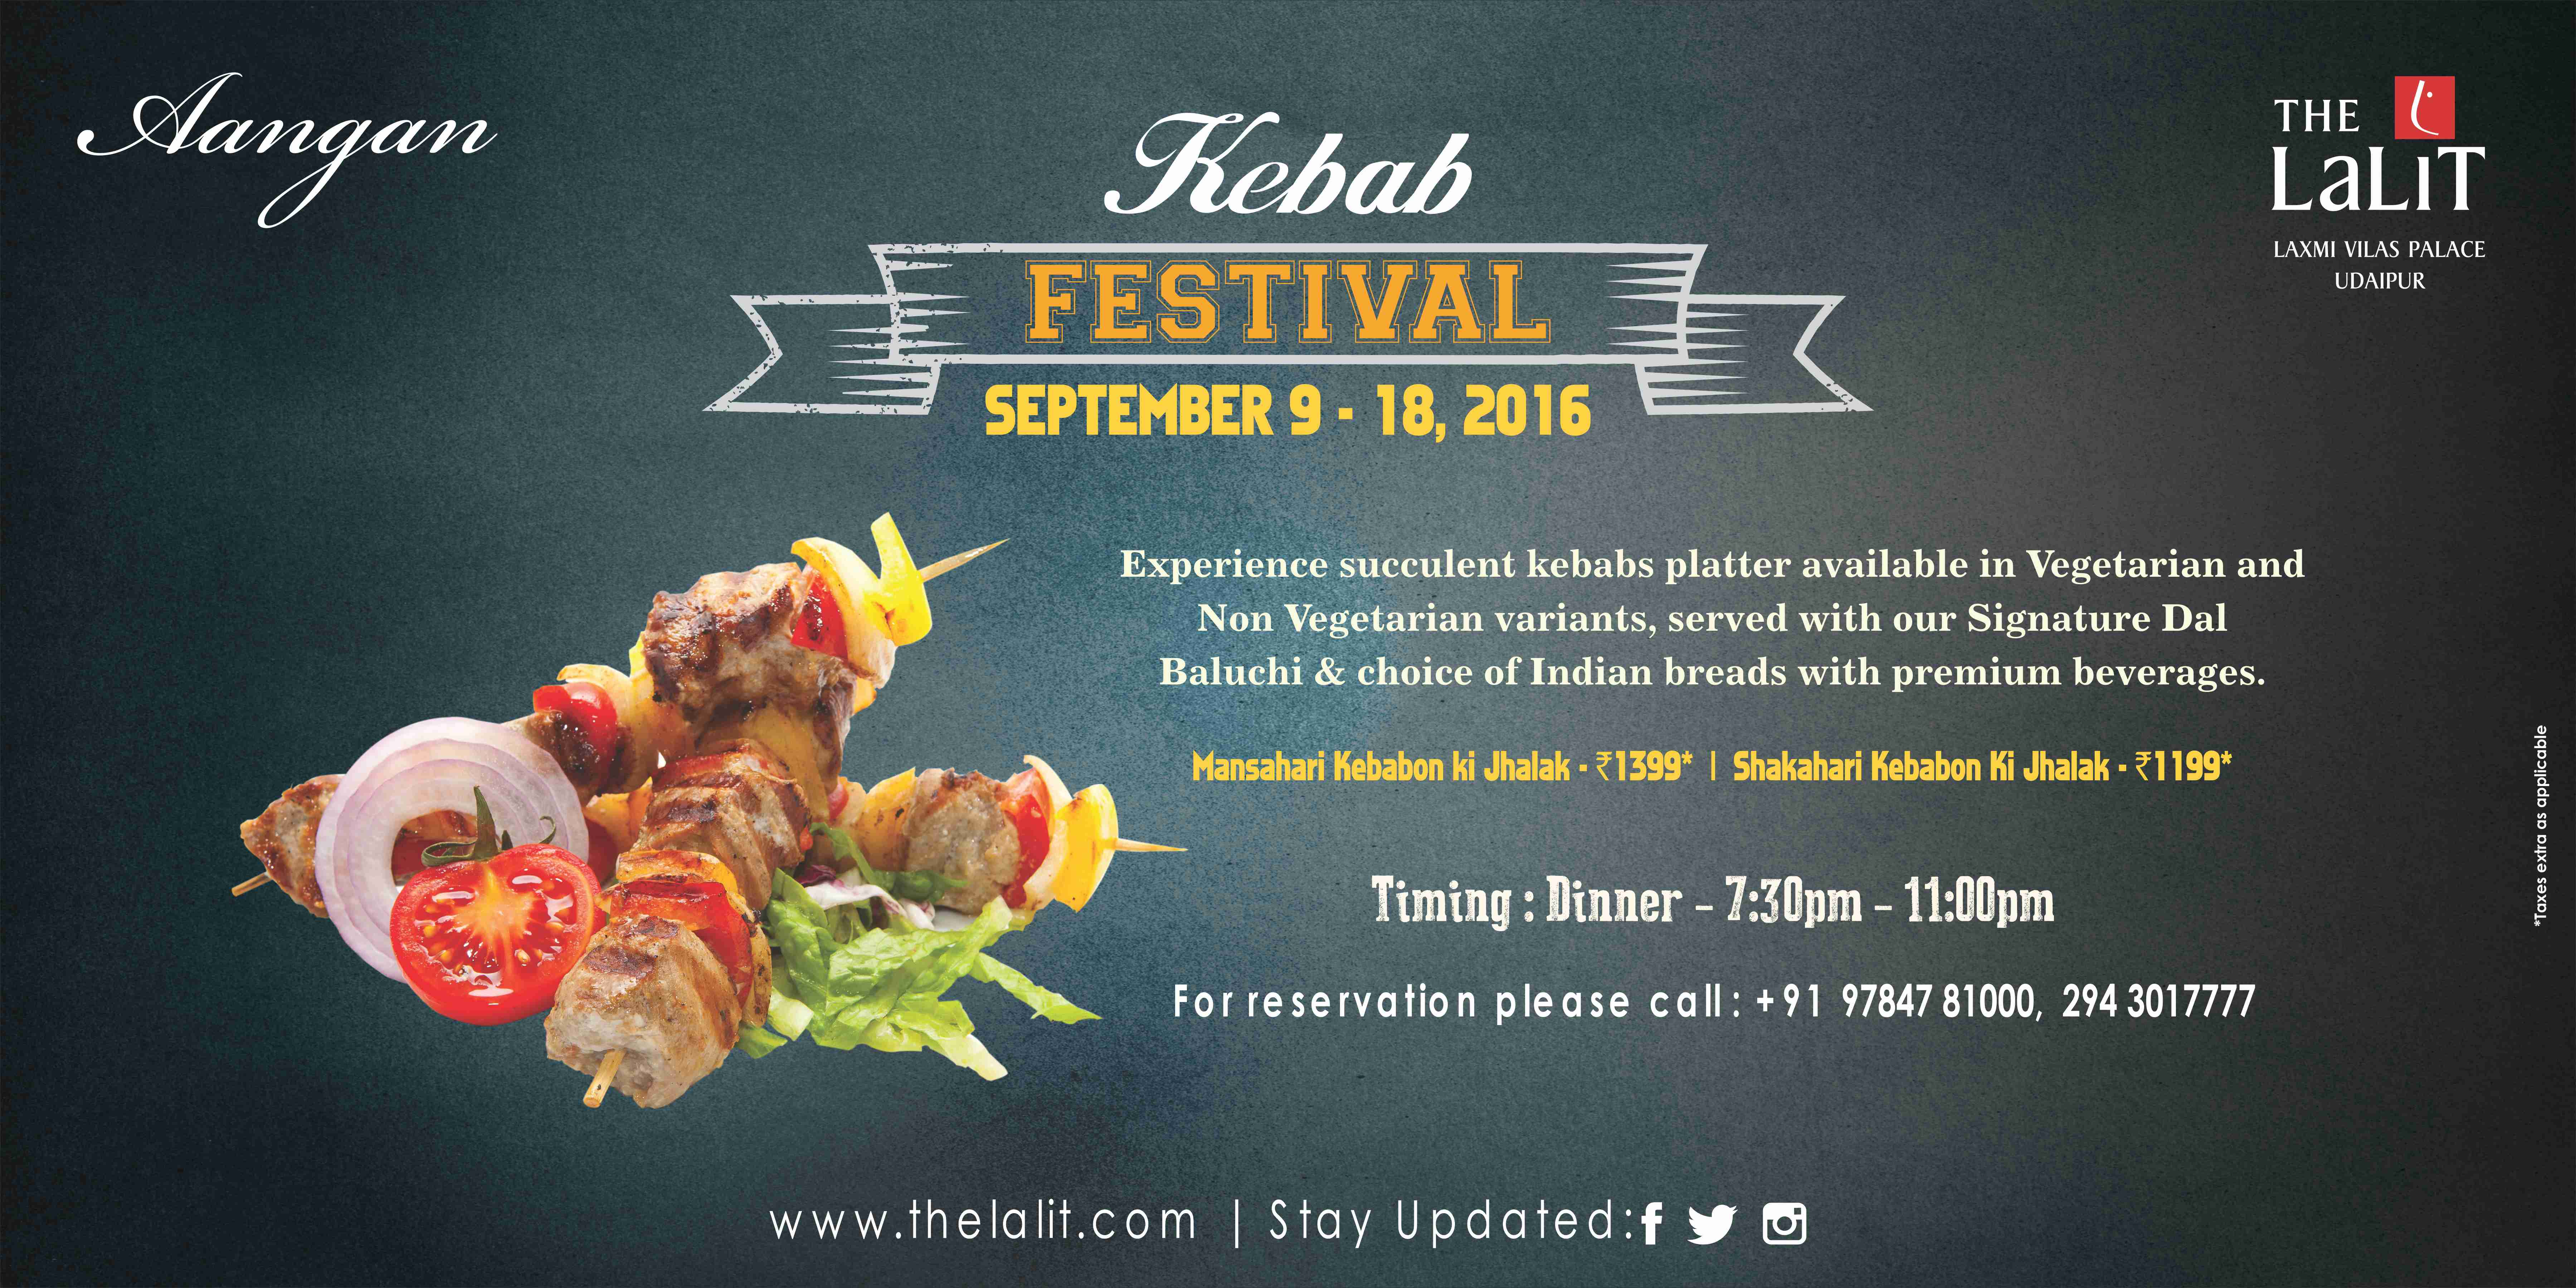 Advertisement_Kebab Festival_The lalit